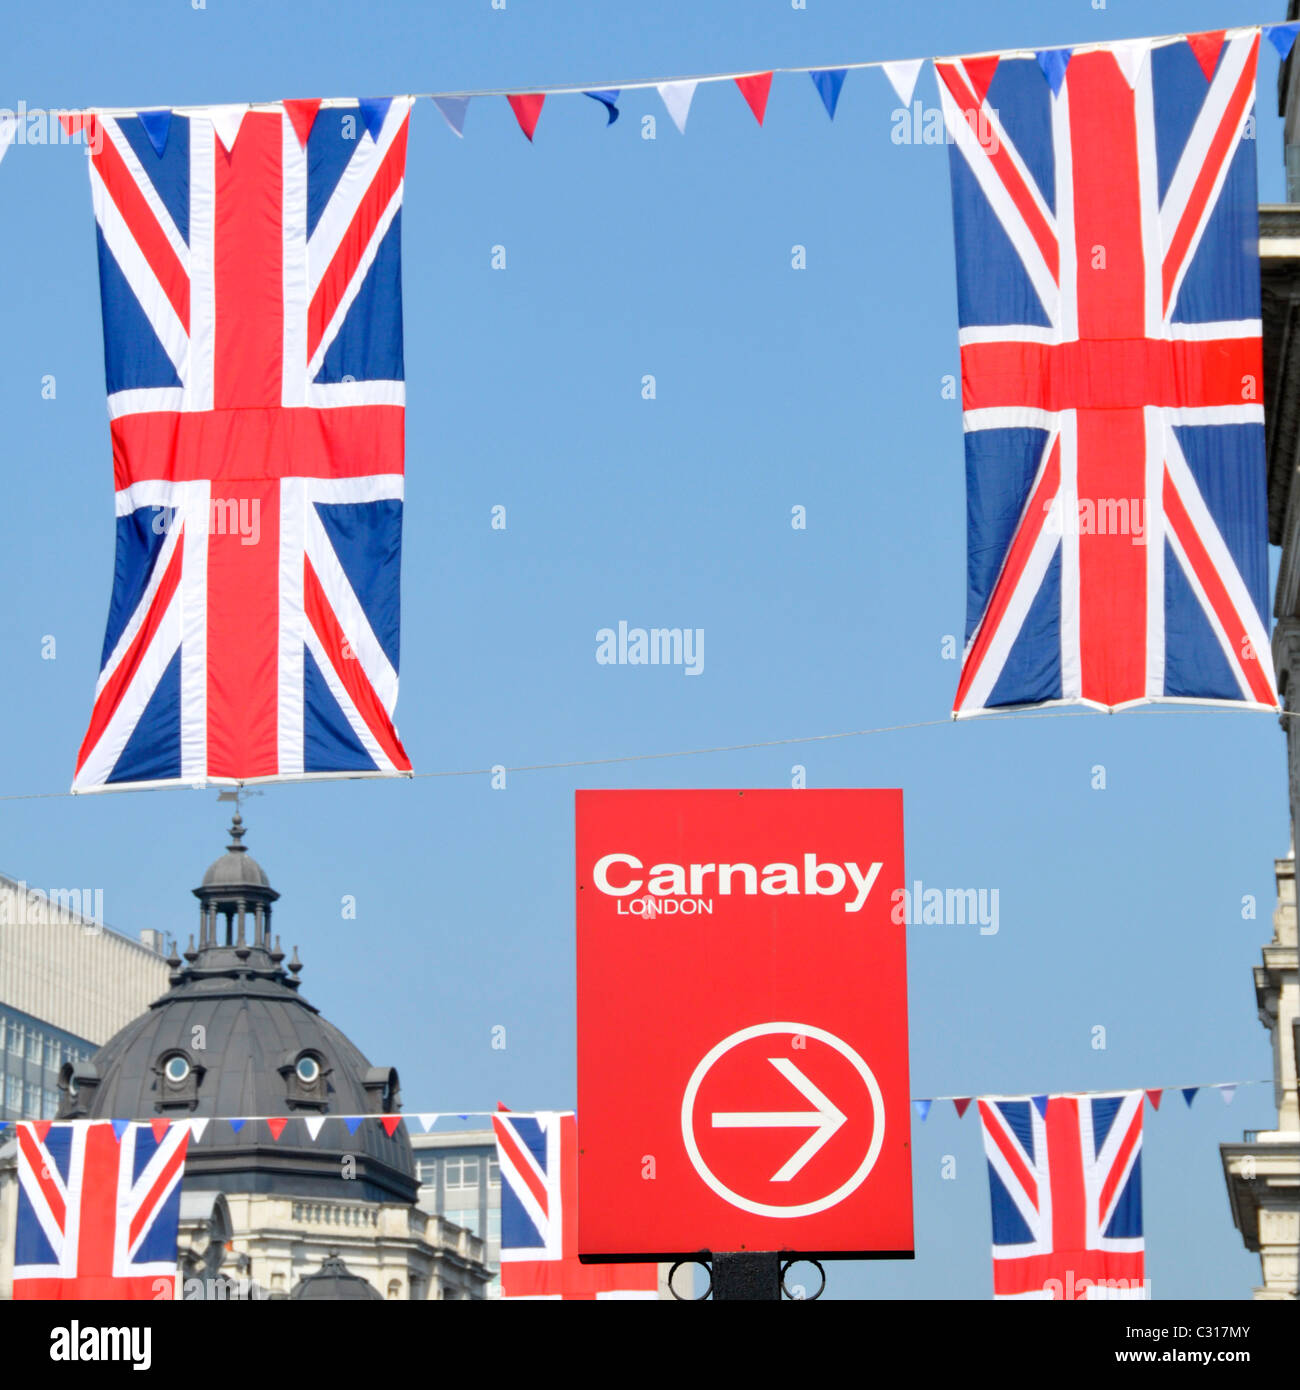 Carnaby Street London signs and Union Jack flags - Stock Image